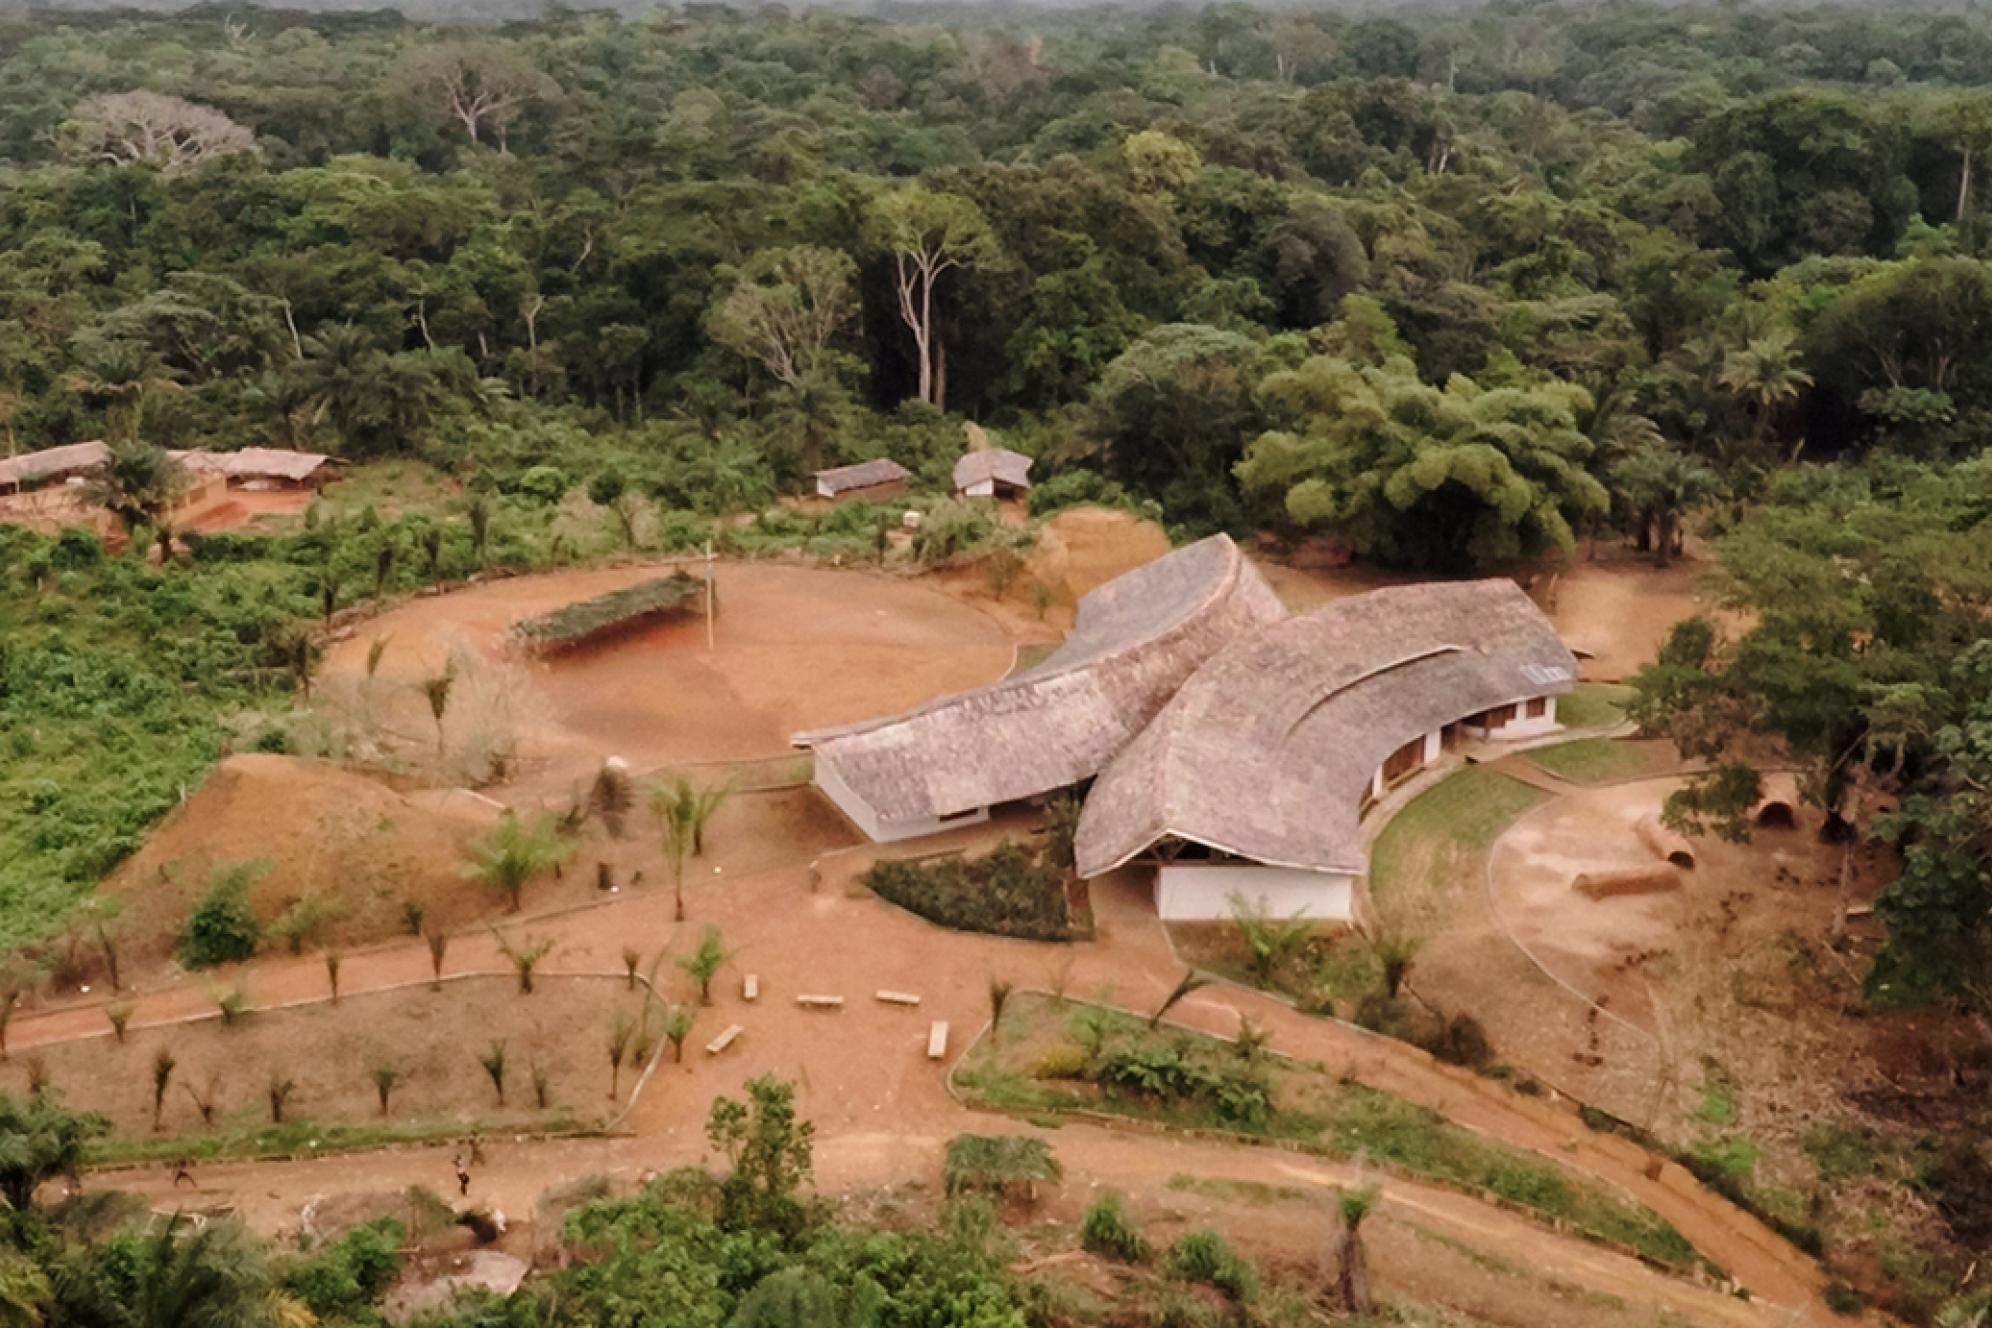 Photo: Ilima AWF Conservation School and Housing